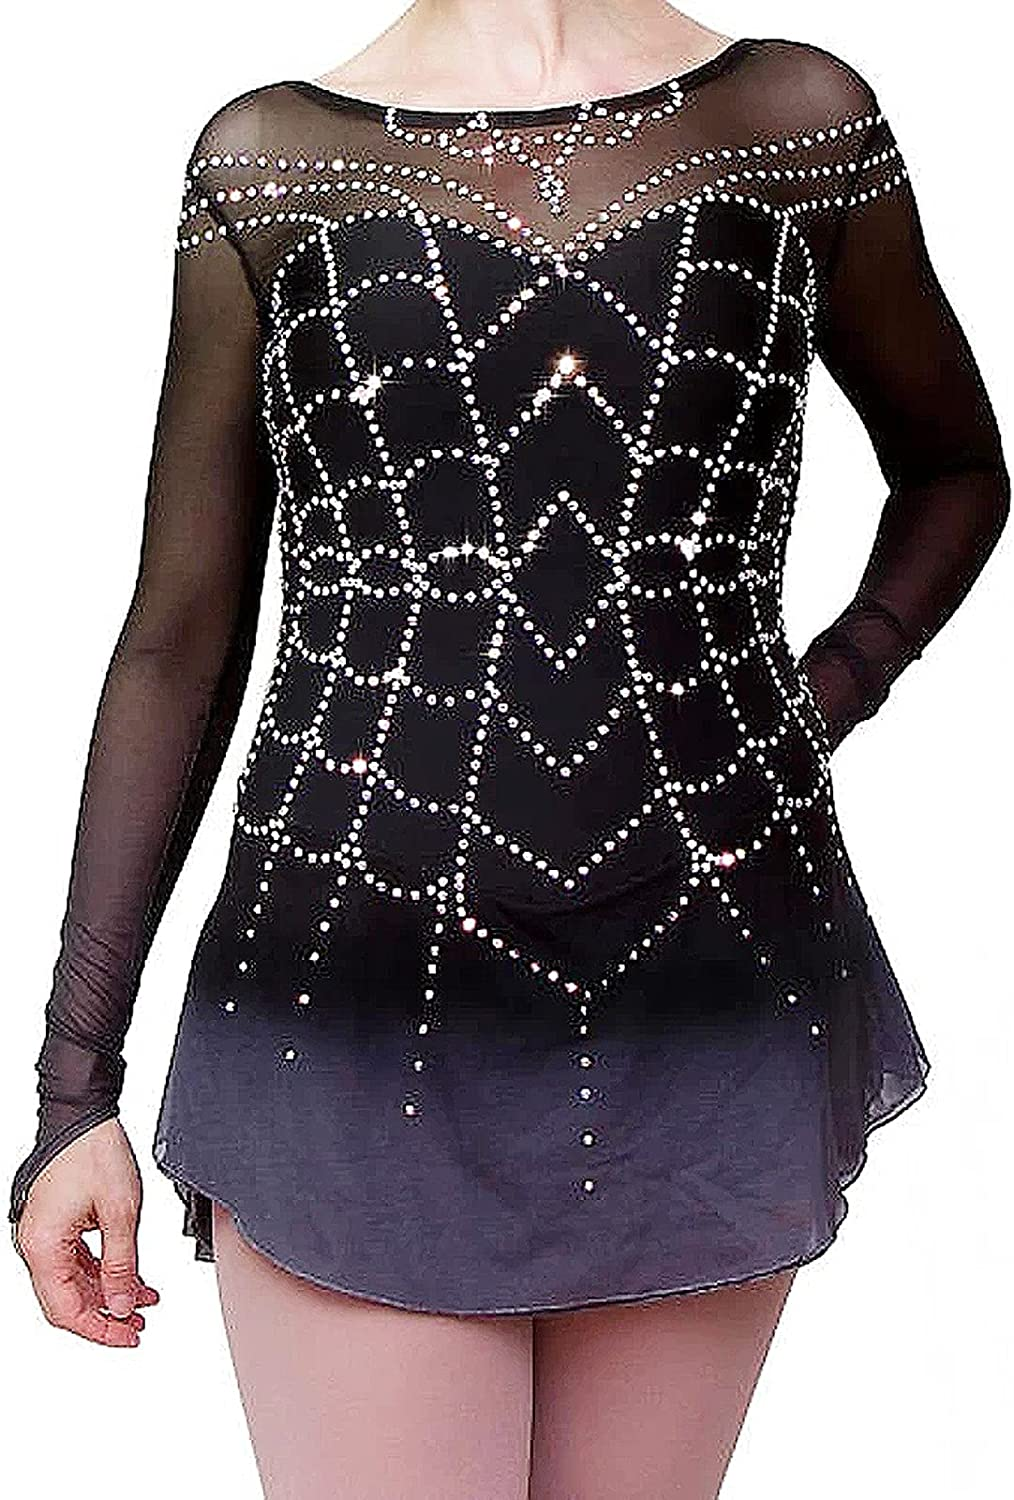 Figure Skating Dress Girls Max 80% OFF Free shipping New Competitive Pro Women's Spandex